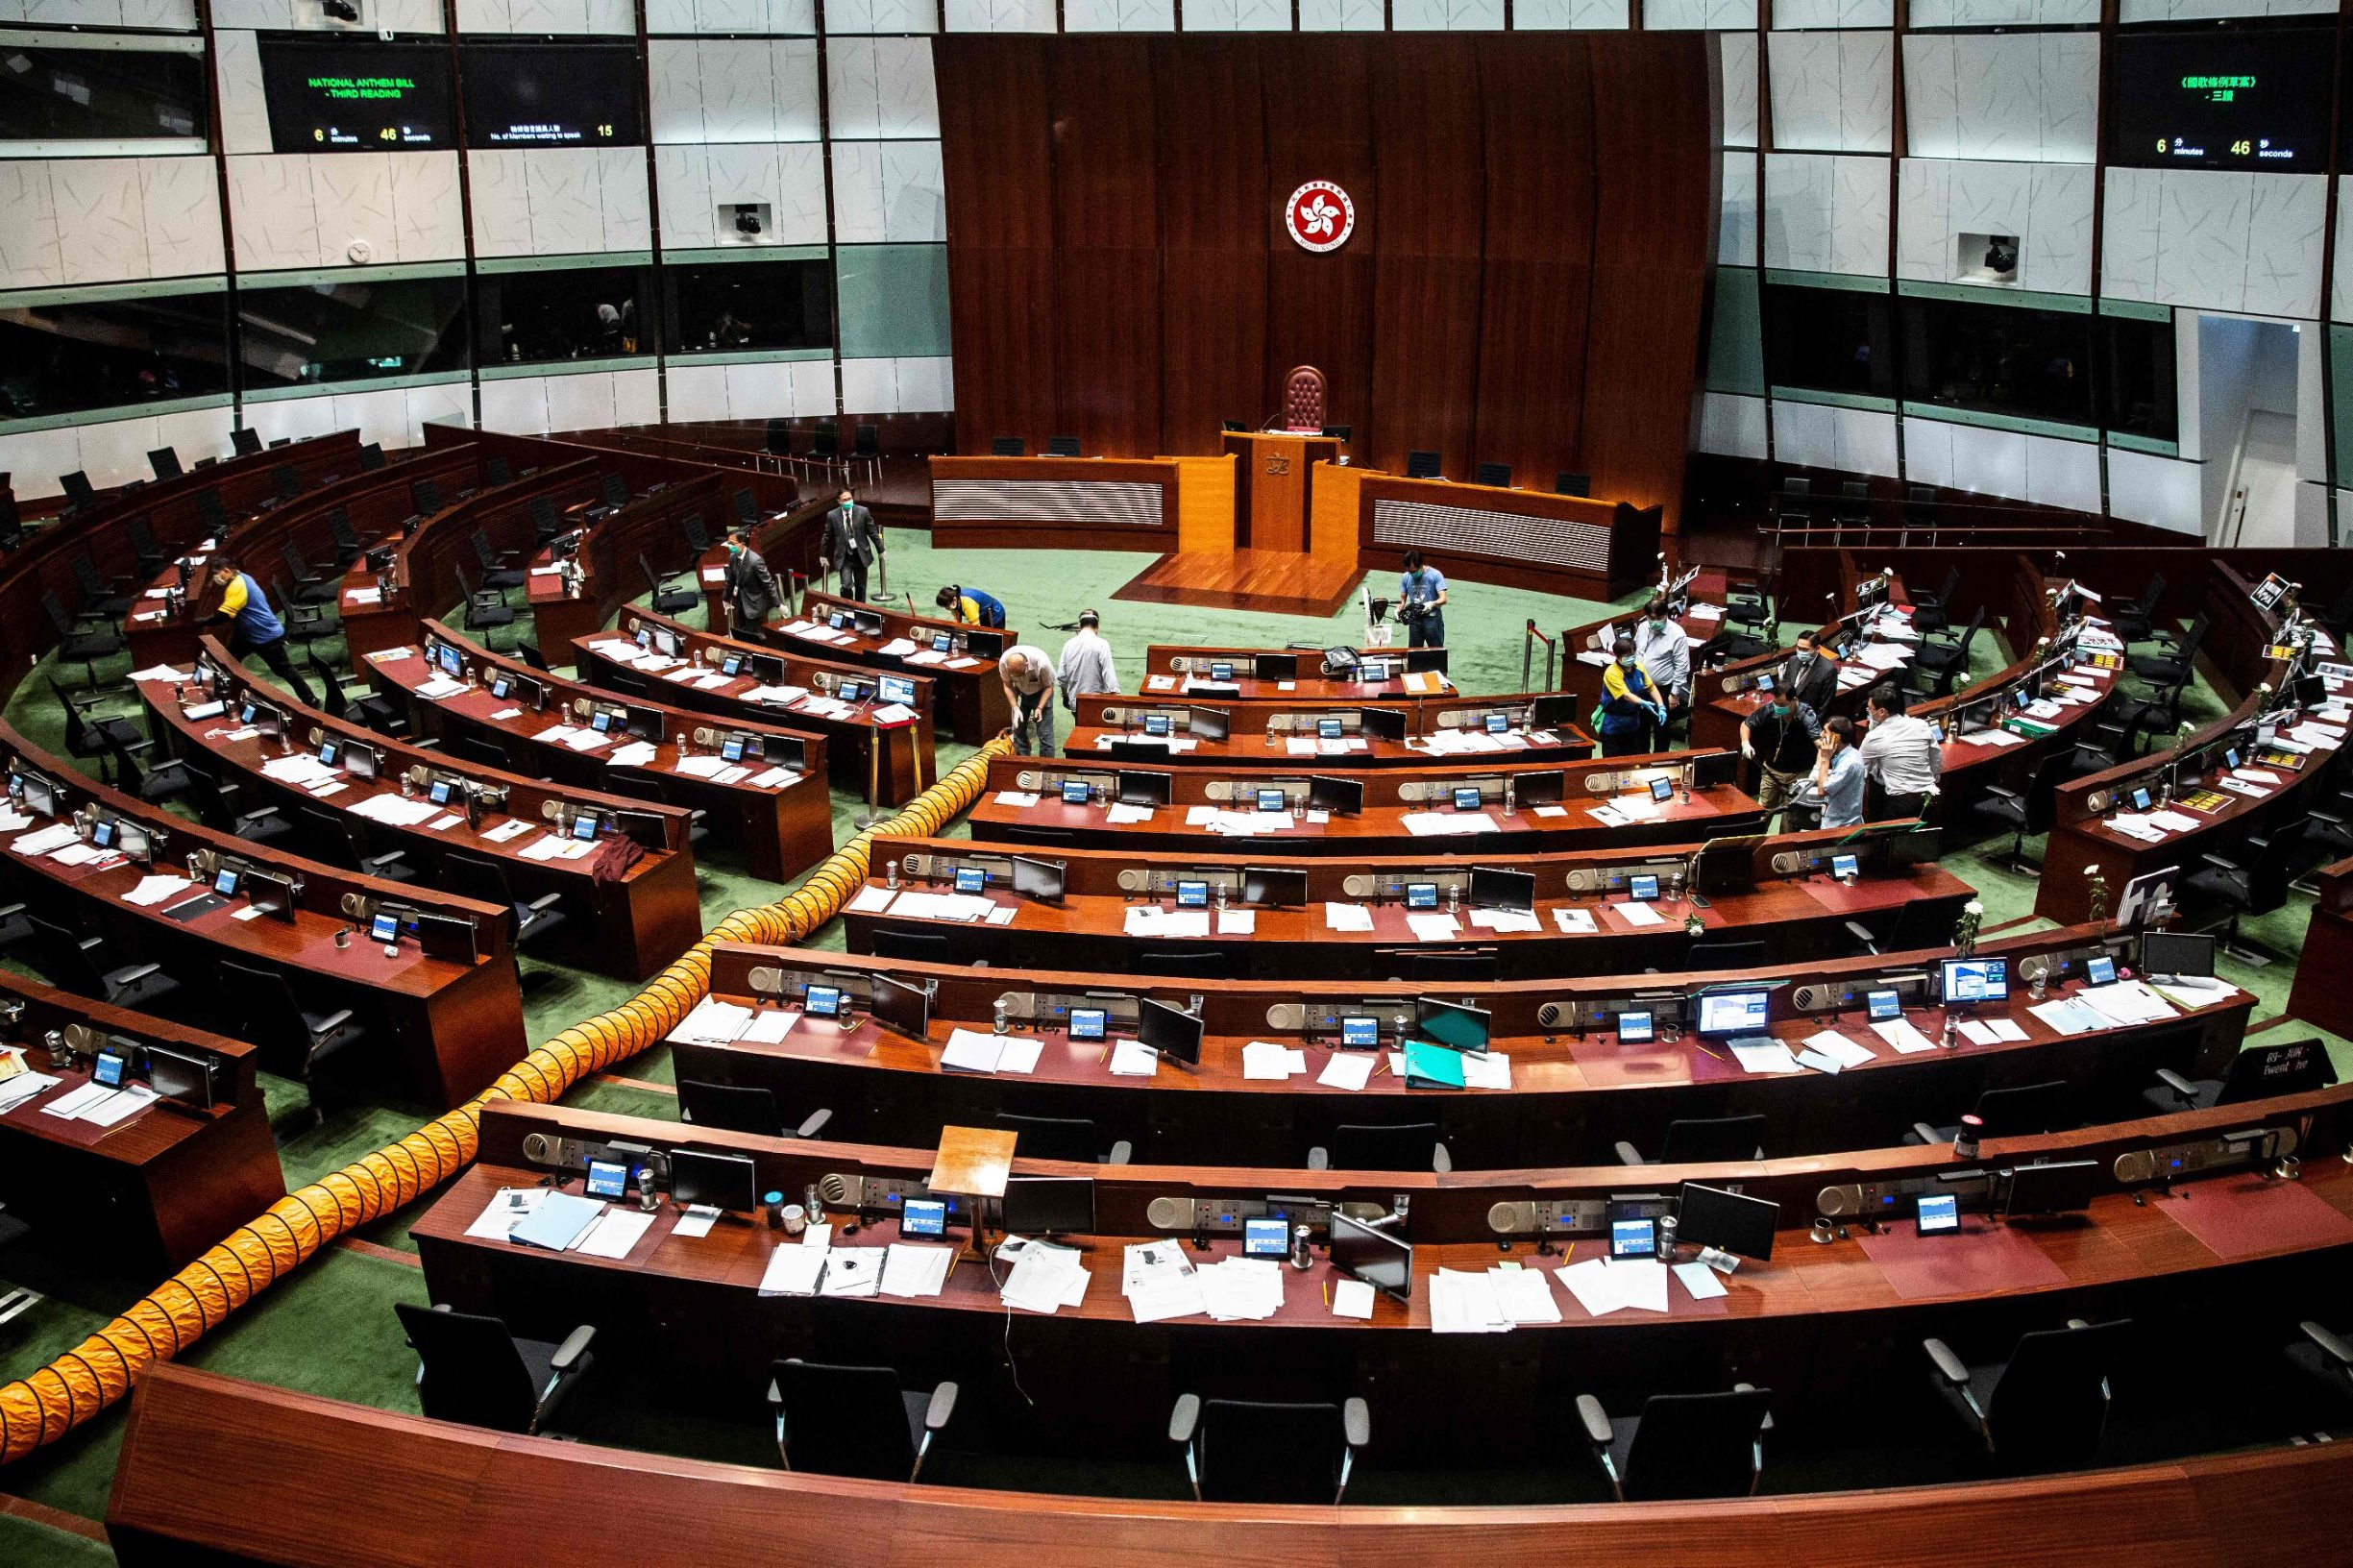 A ventilation tube (L) is set up as workers (R) clean a section in the main chamber of the Legislative Council after pan-democrat lawmakers hurled an odorous liquid during the third reading of the national anthem bill in Hong Kong on June 4, 2020, ahead of a vote over a law that bans insulting China's national anthem. (Photo by ISAAC LAWRENCE / AFP)